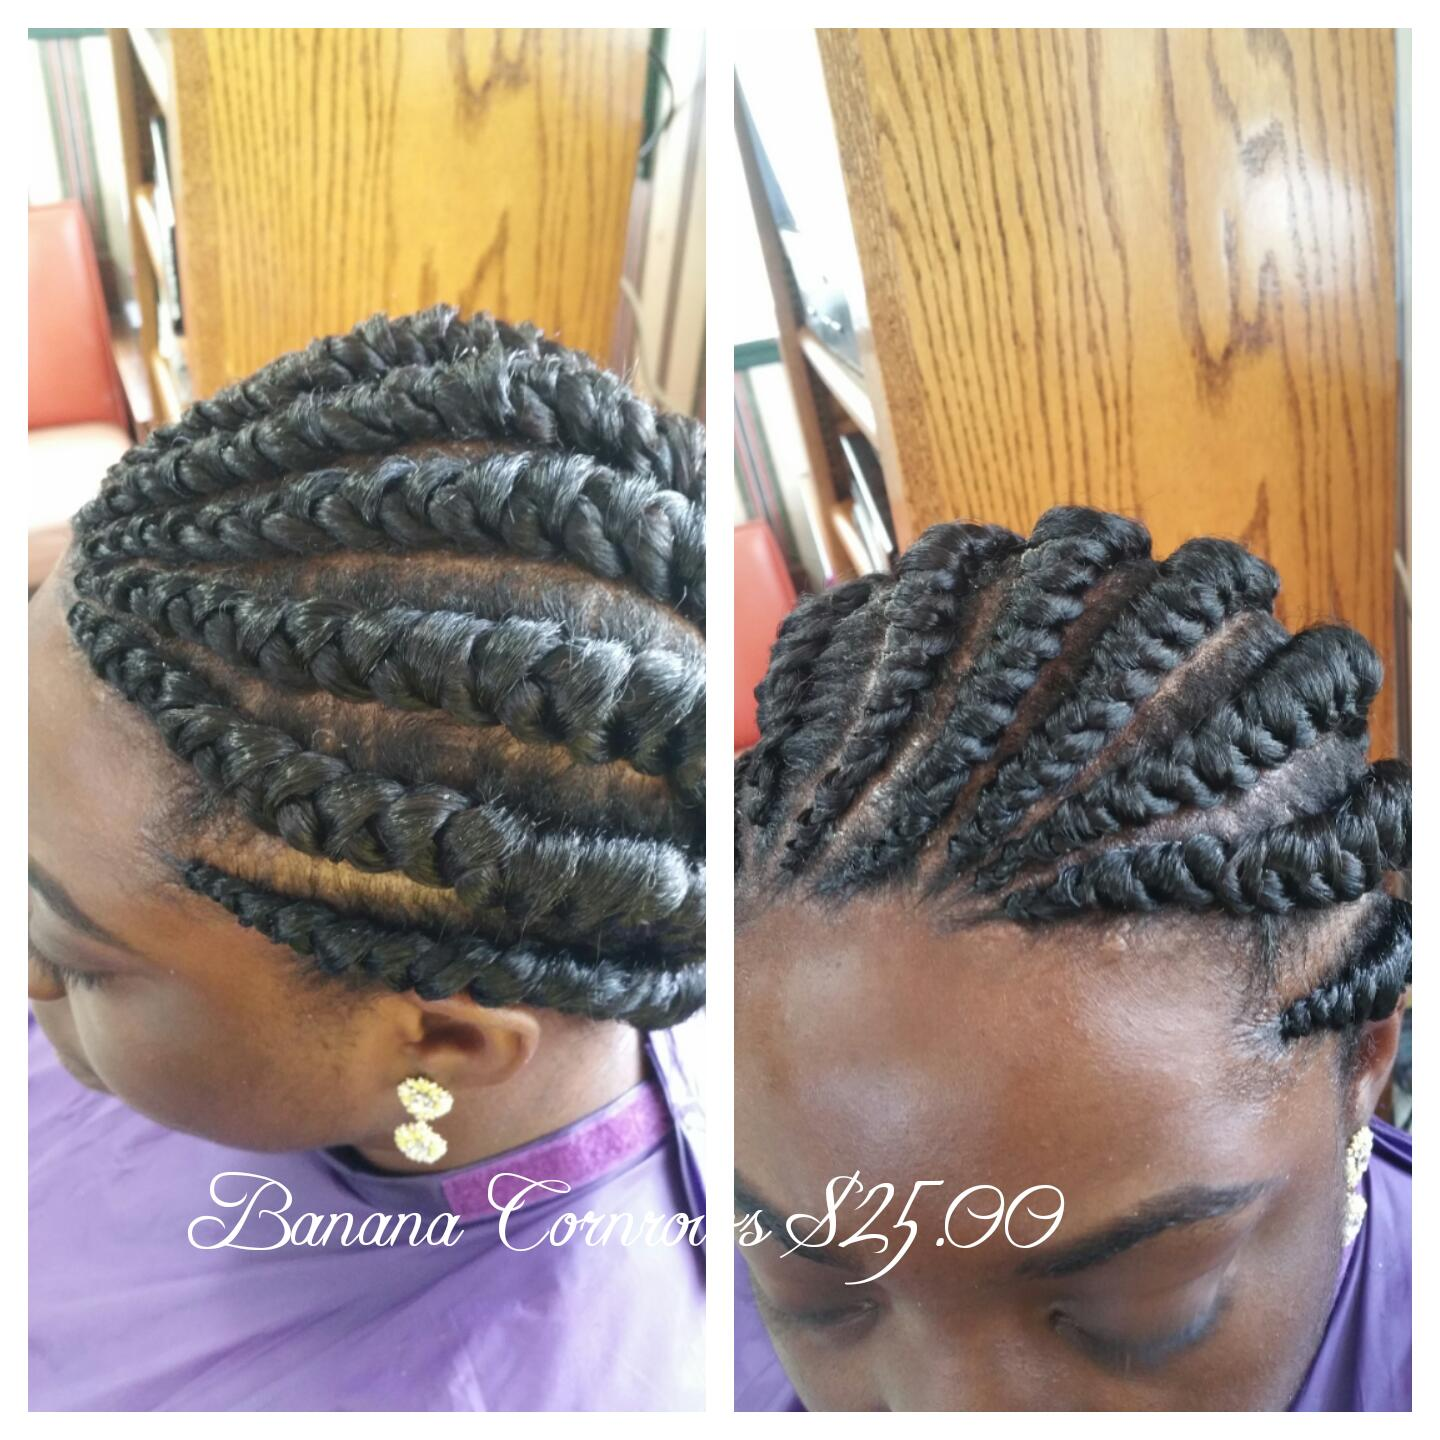 File:Ghana Braids. .. Crystal's Braiding & Beyond.jpg ...